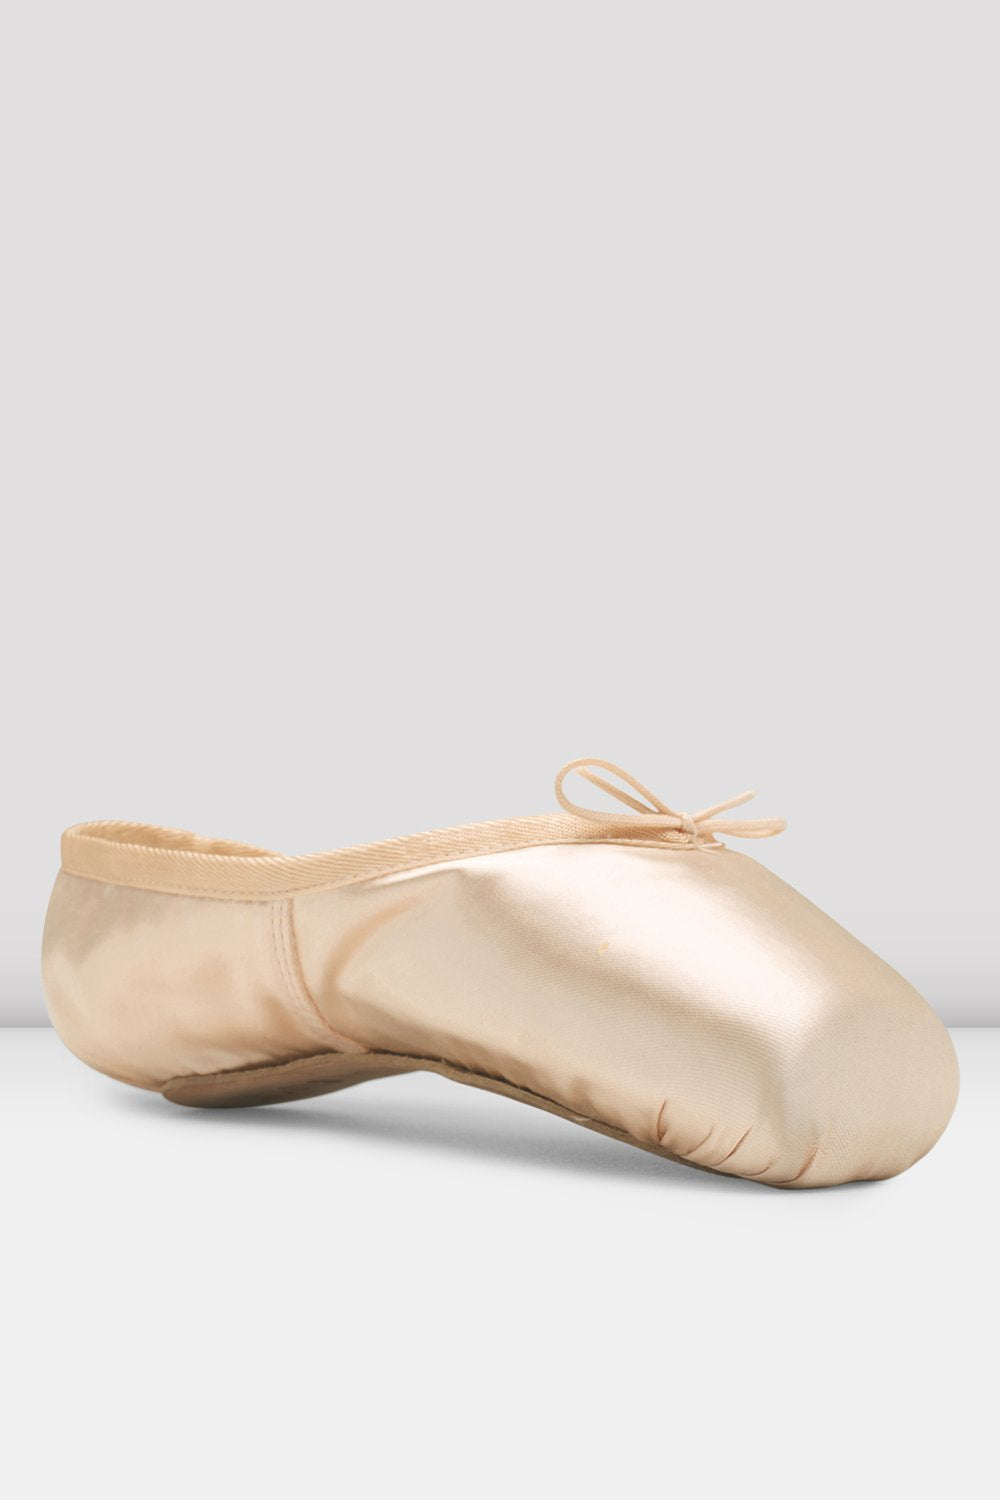 Pink Satin Bloch Heritage Pointe Shoes single shoe